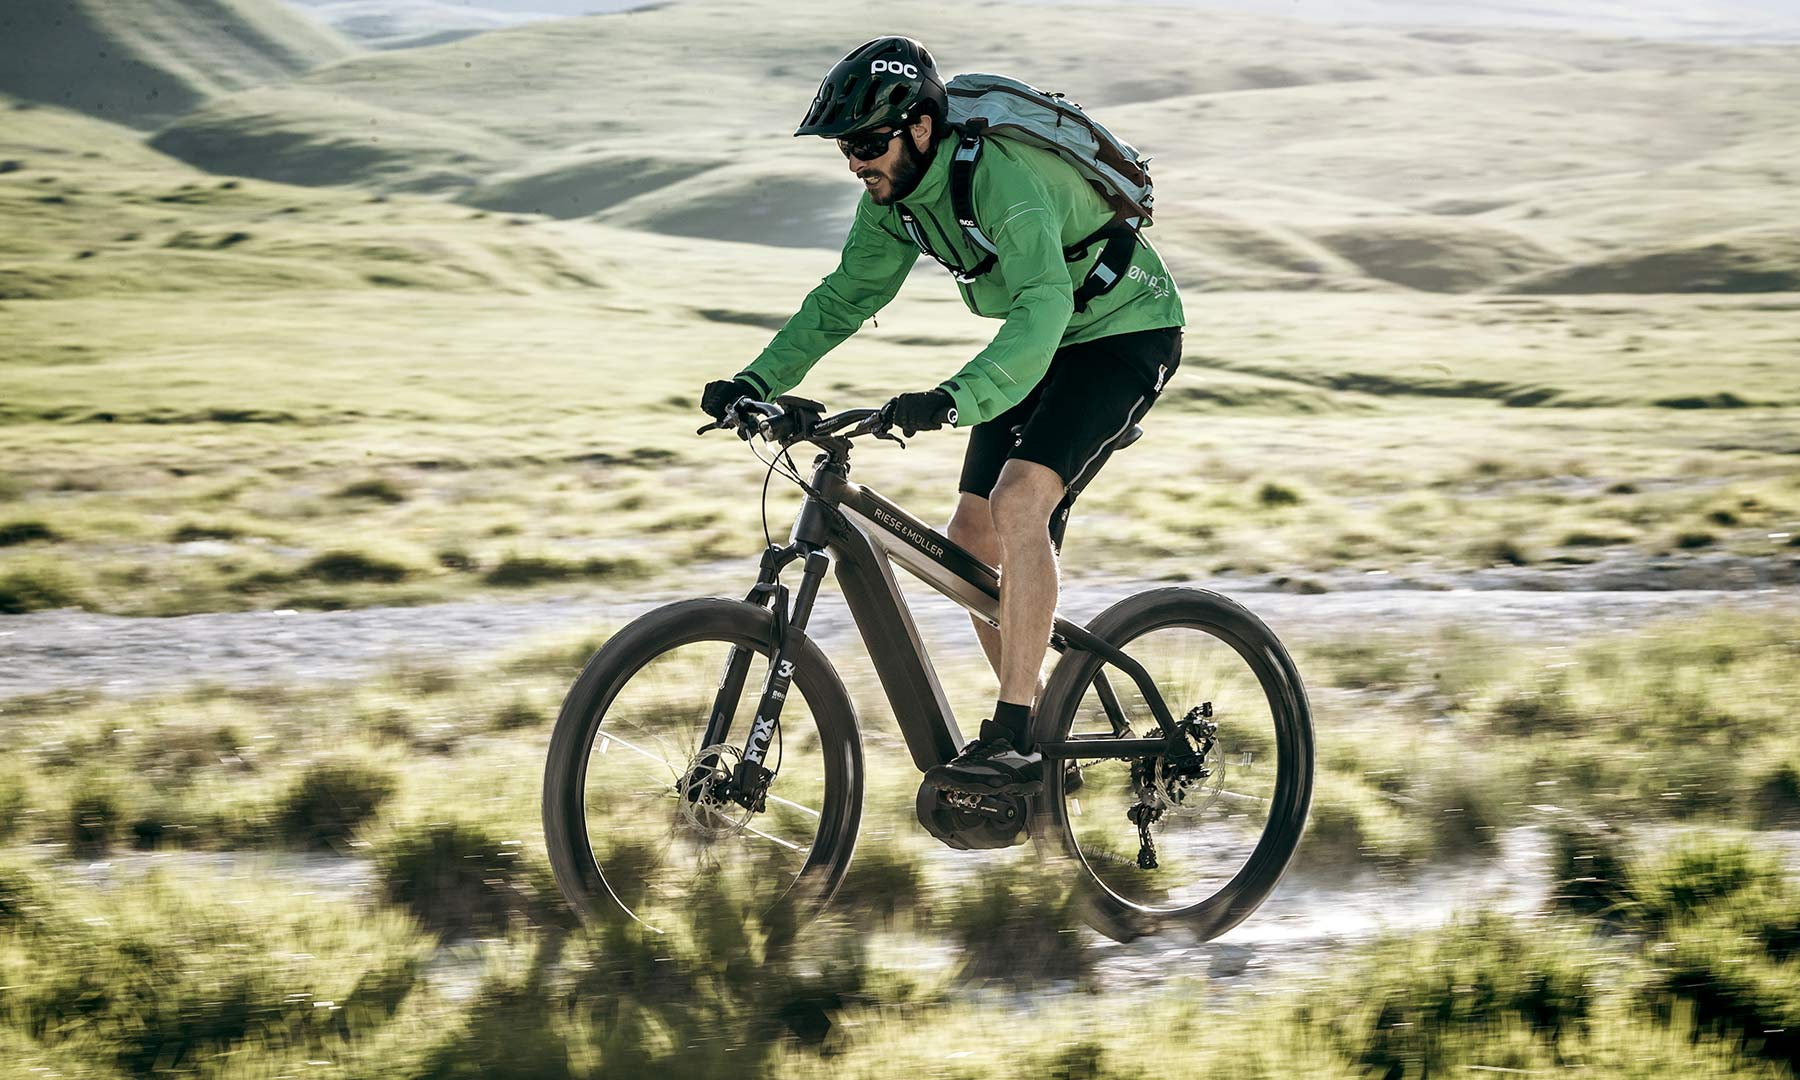 a8e413d3fa7 Riese & Mueller power off-road with New Charger & Supercharger e-MTB - e -Bikerumor